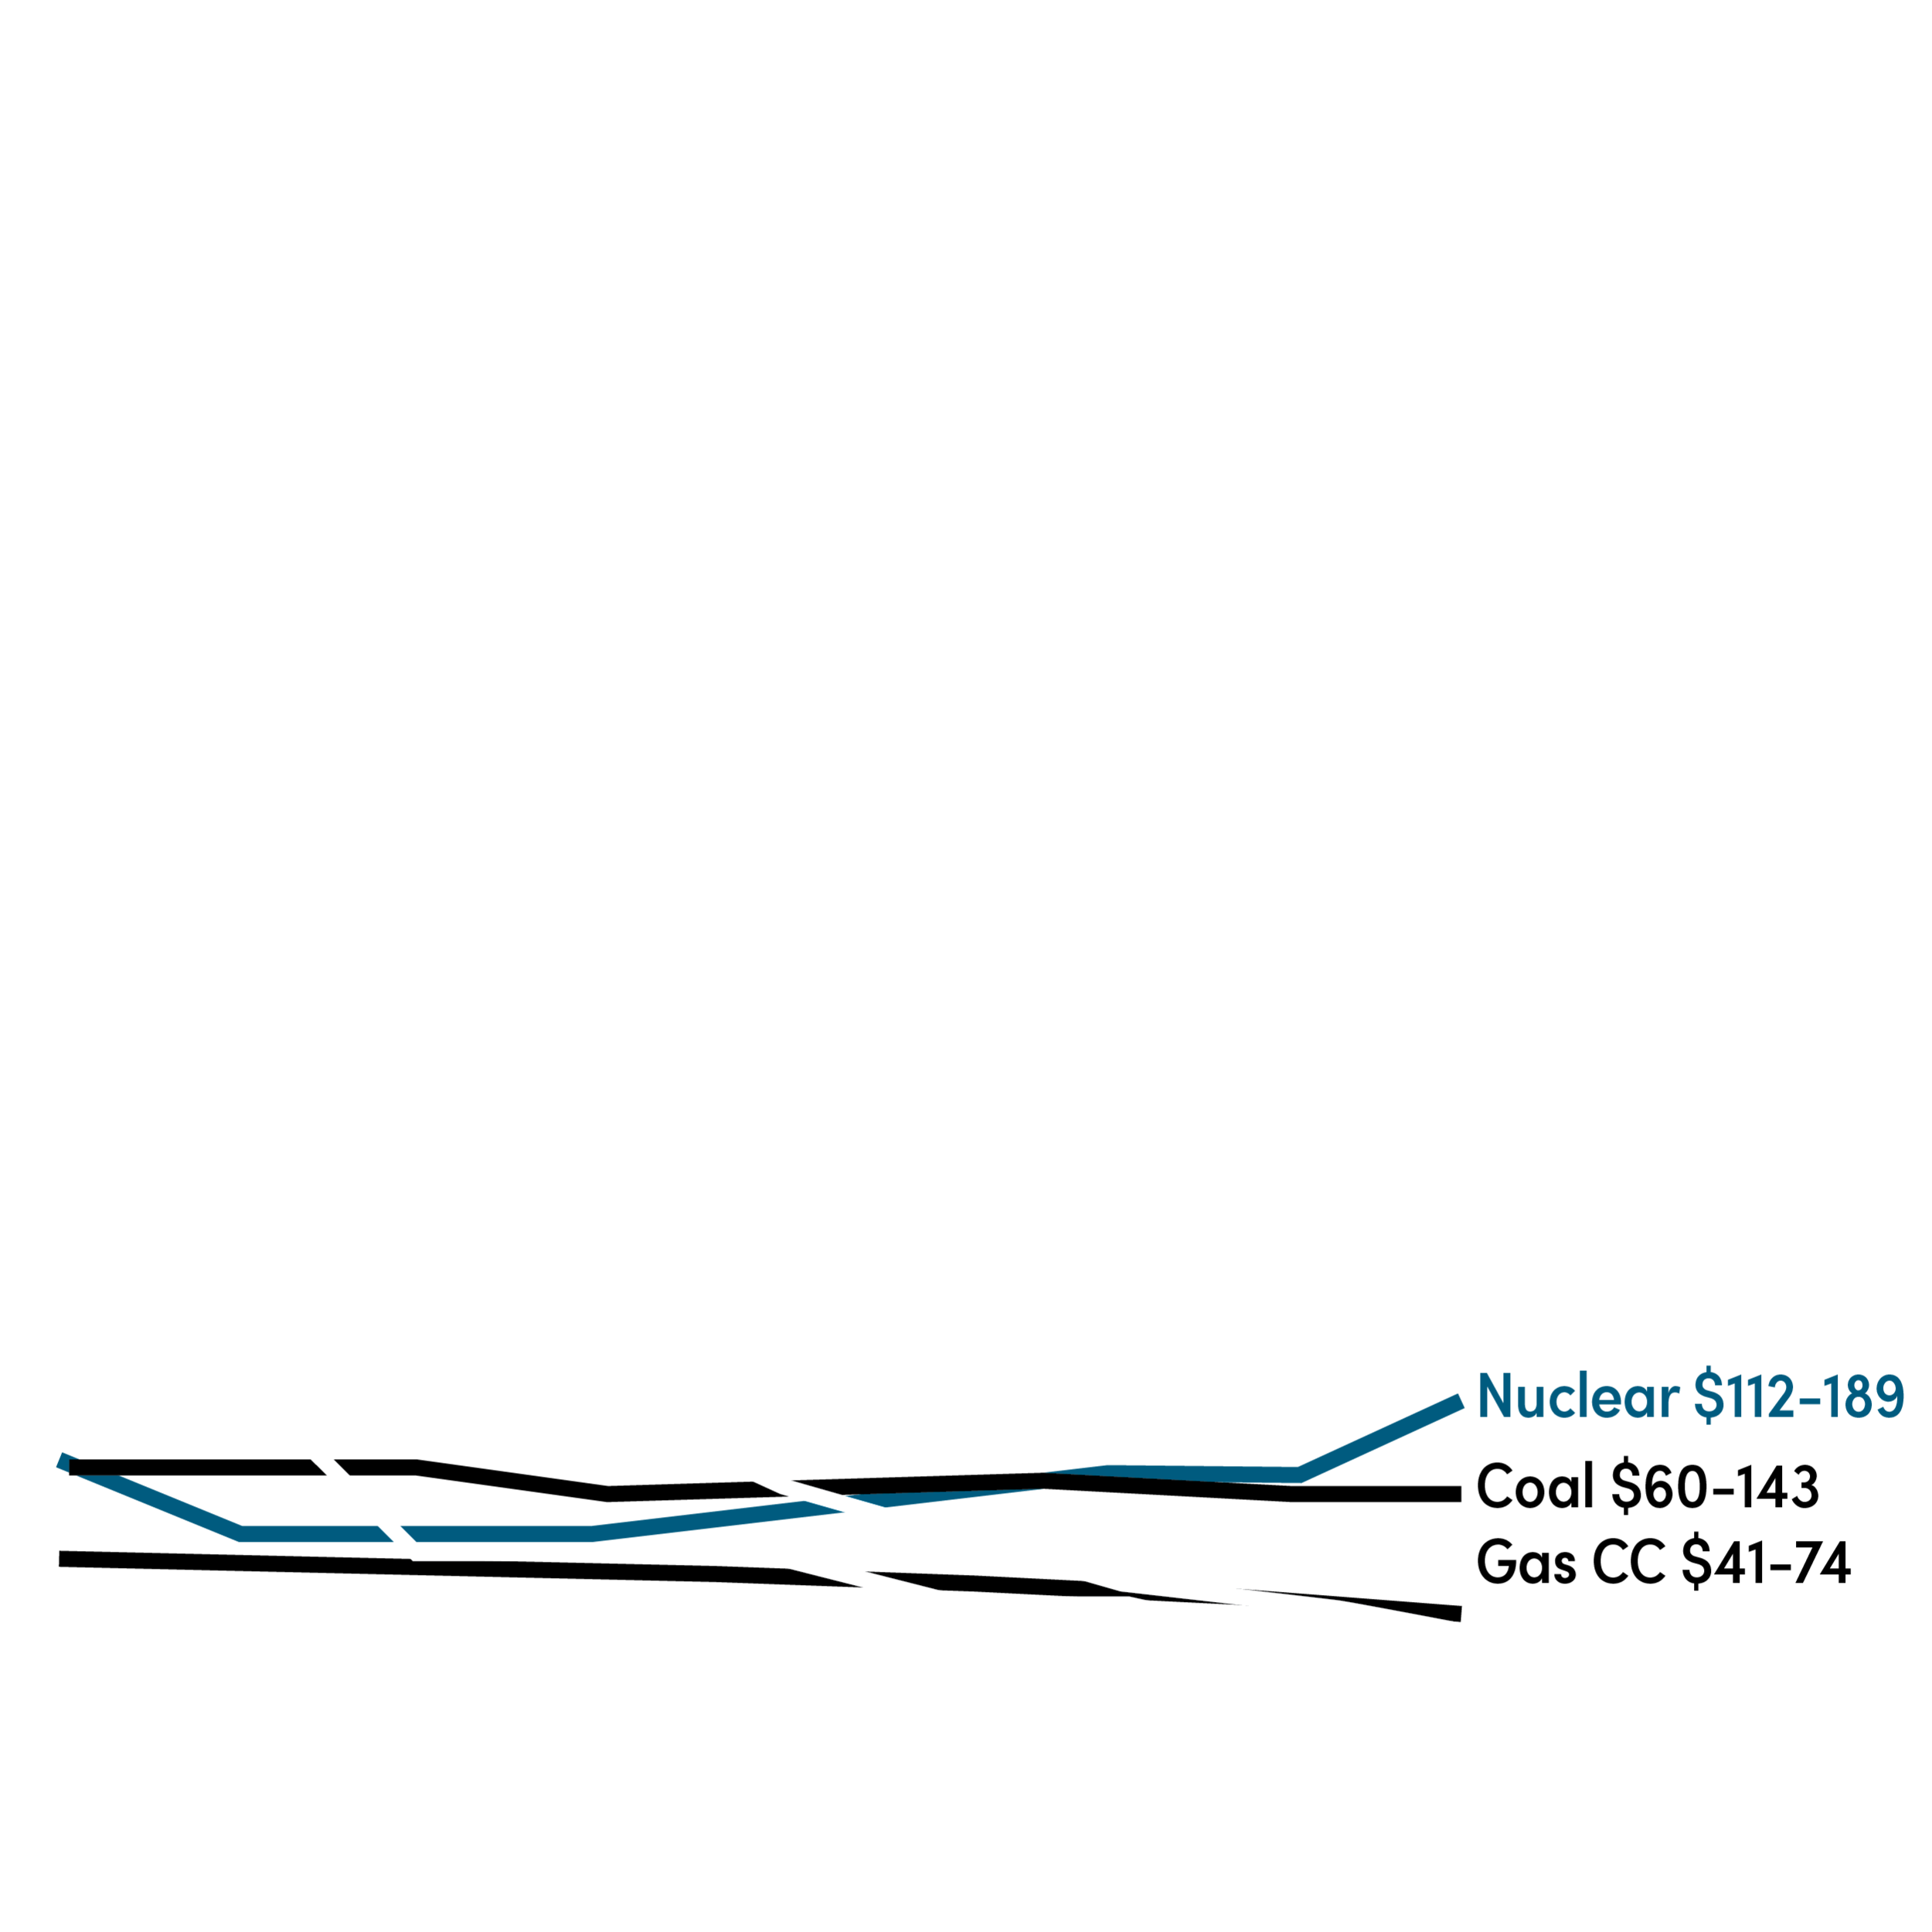 The future of electricity - But now, clean renewable wind and solar are the cheapest sources of energy generation - even cheaper than existing gas and coal plants.